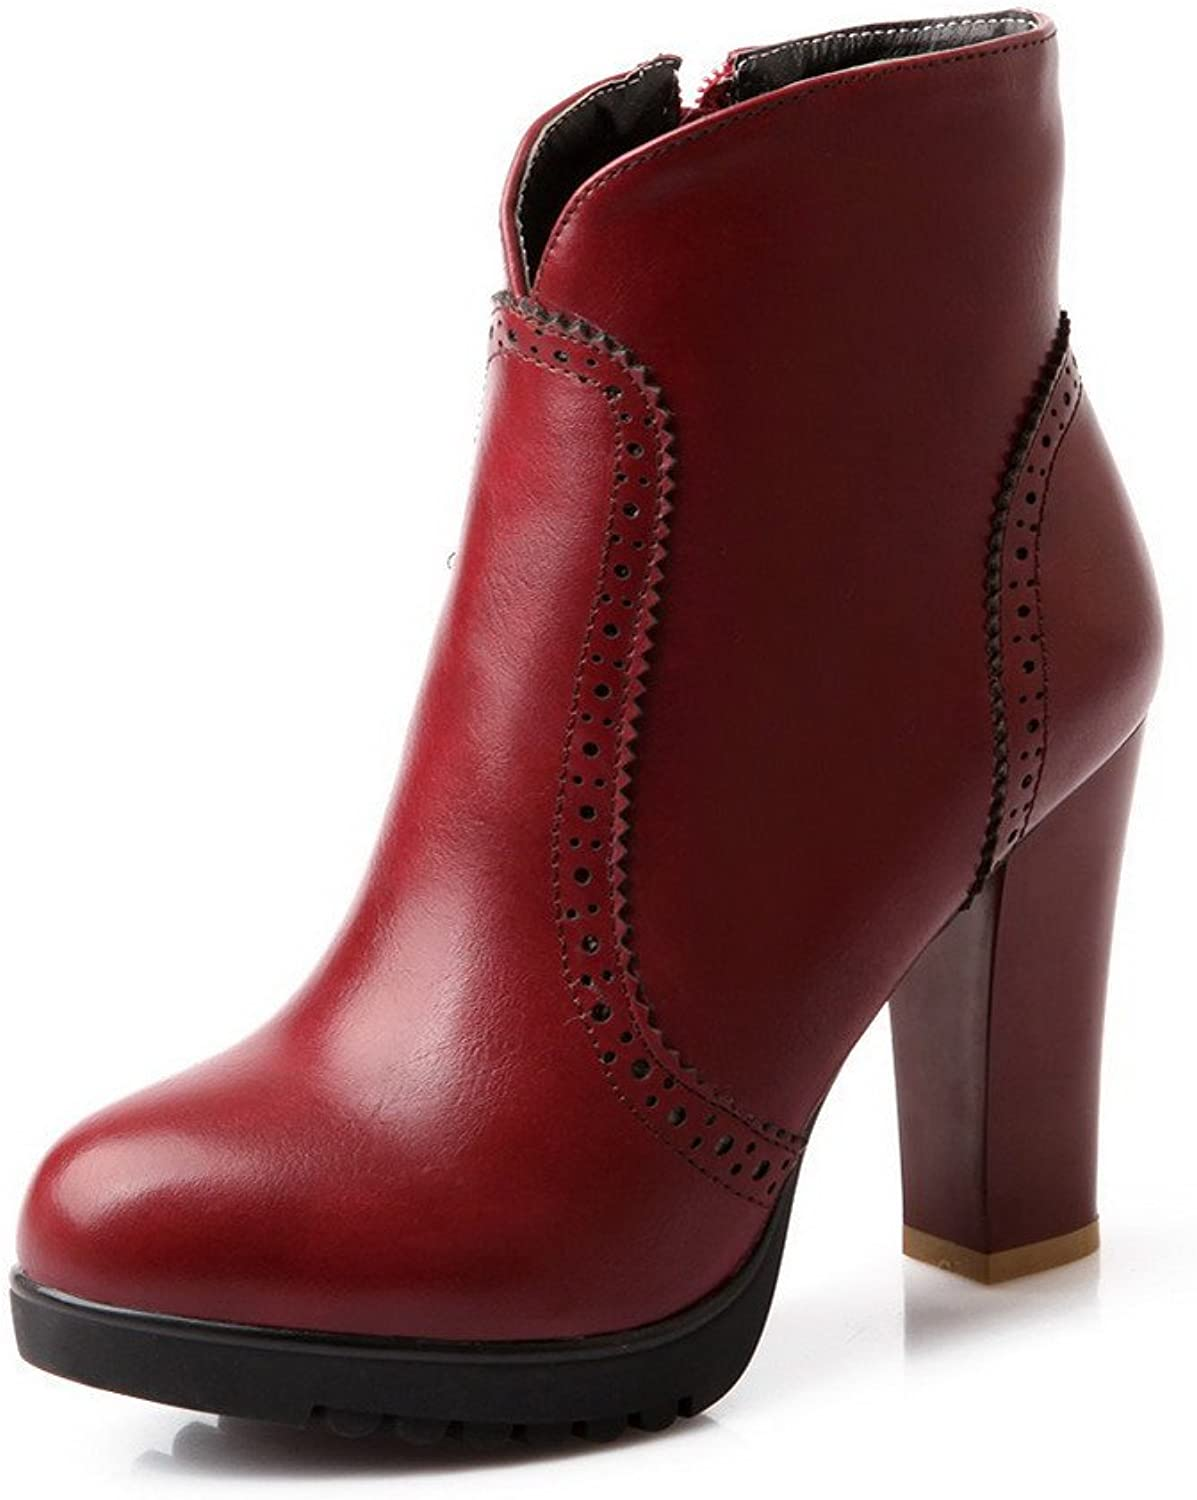 WeenFashion Womens Round Toe High Heels Soft Material Solid Boot with Platform, Red, 7 B(M) US